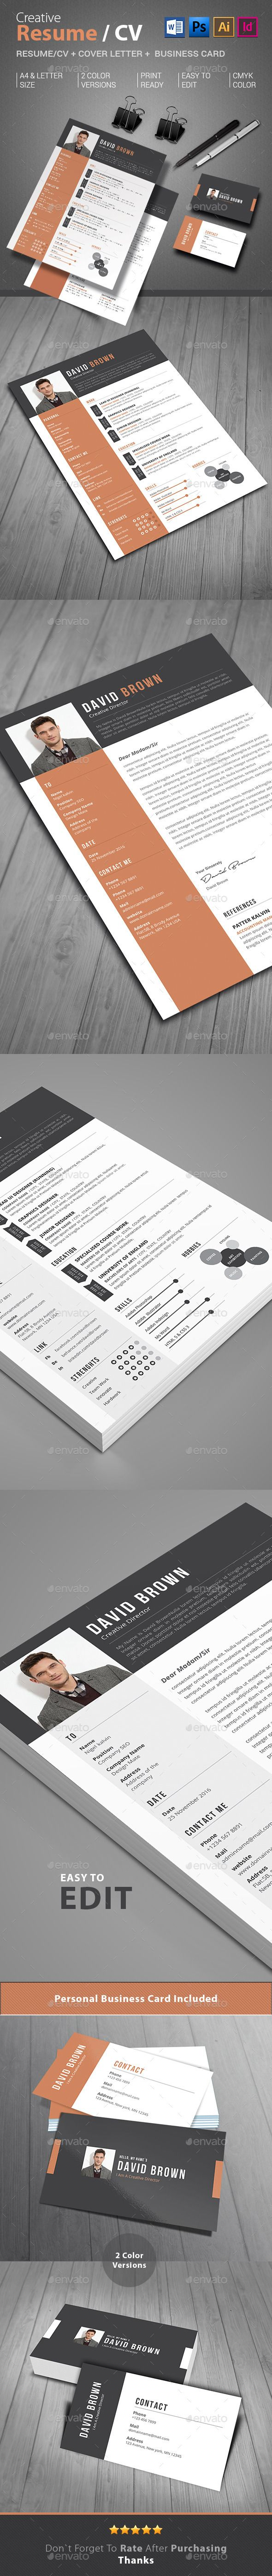 Resume | Cv template, Resume cv and Photoshop illustrator